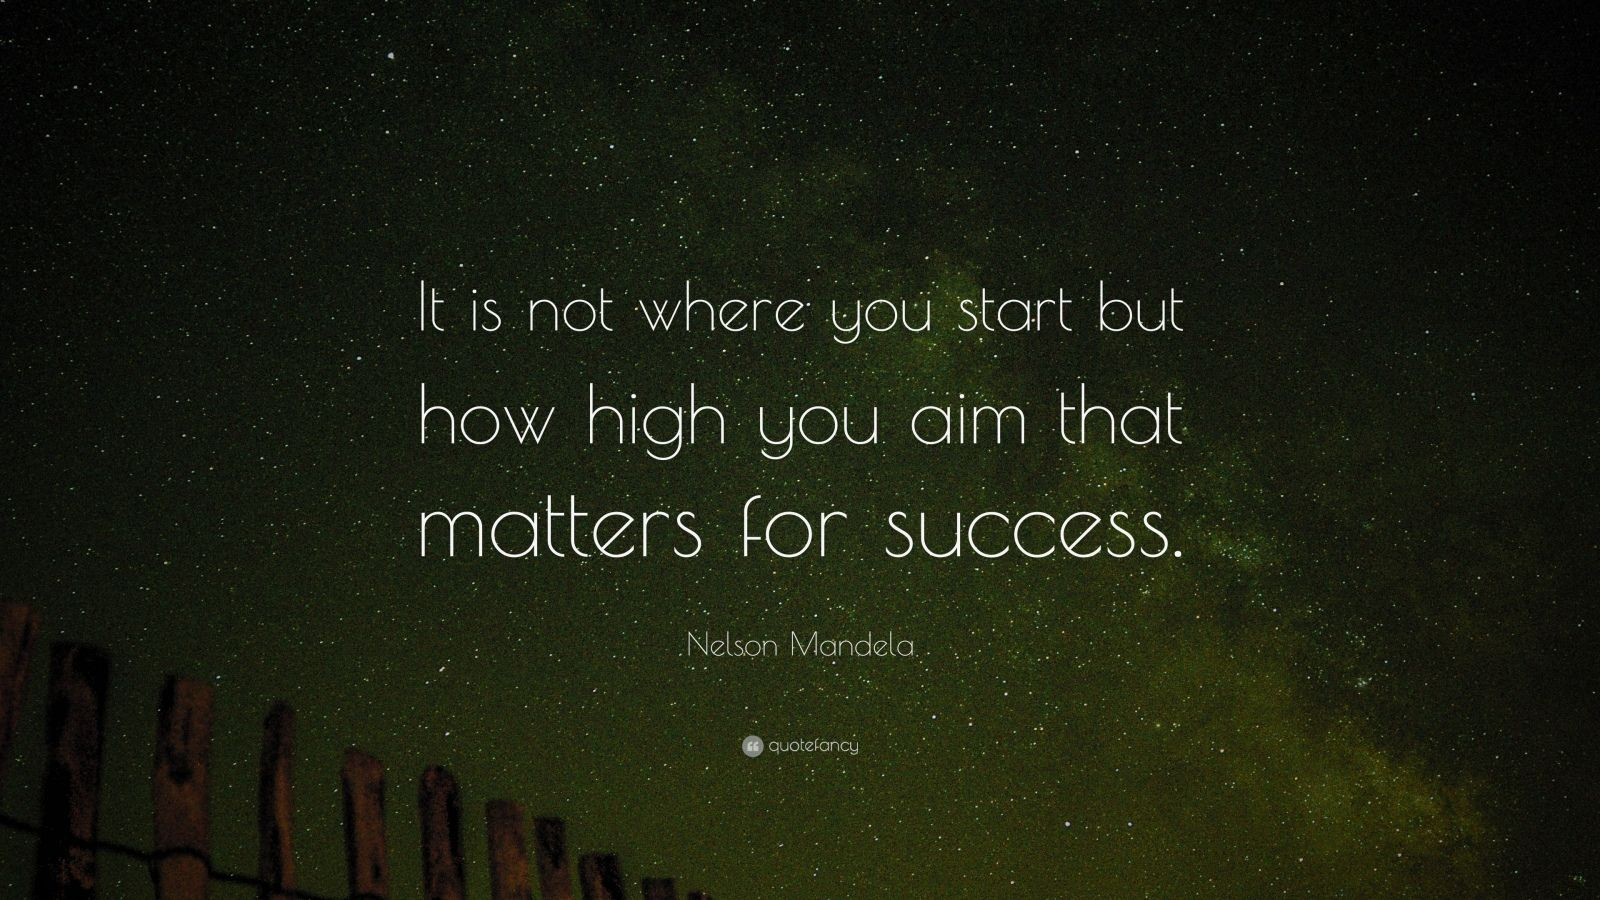 Success Quotes: U201cIt Is Not Where You Start But How High You Aim That